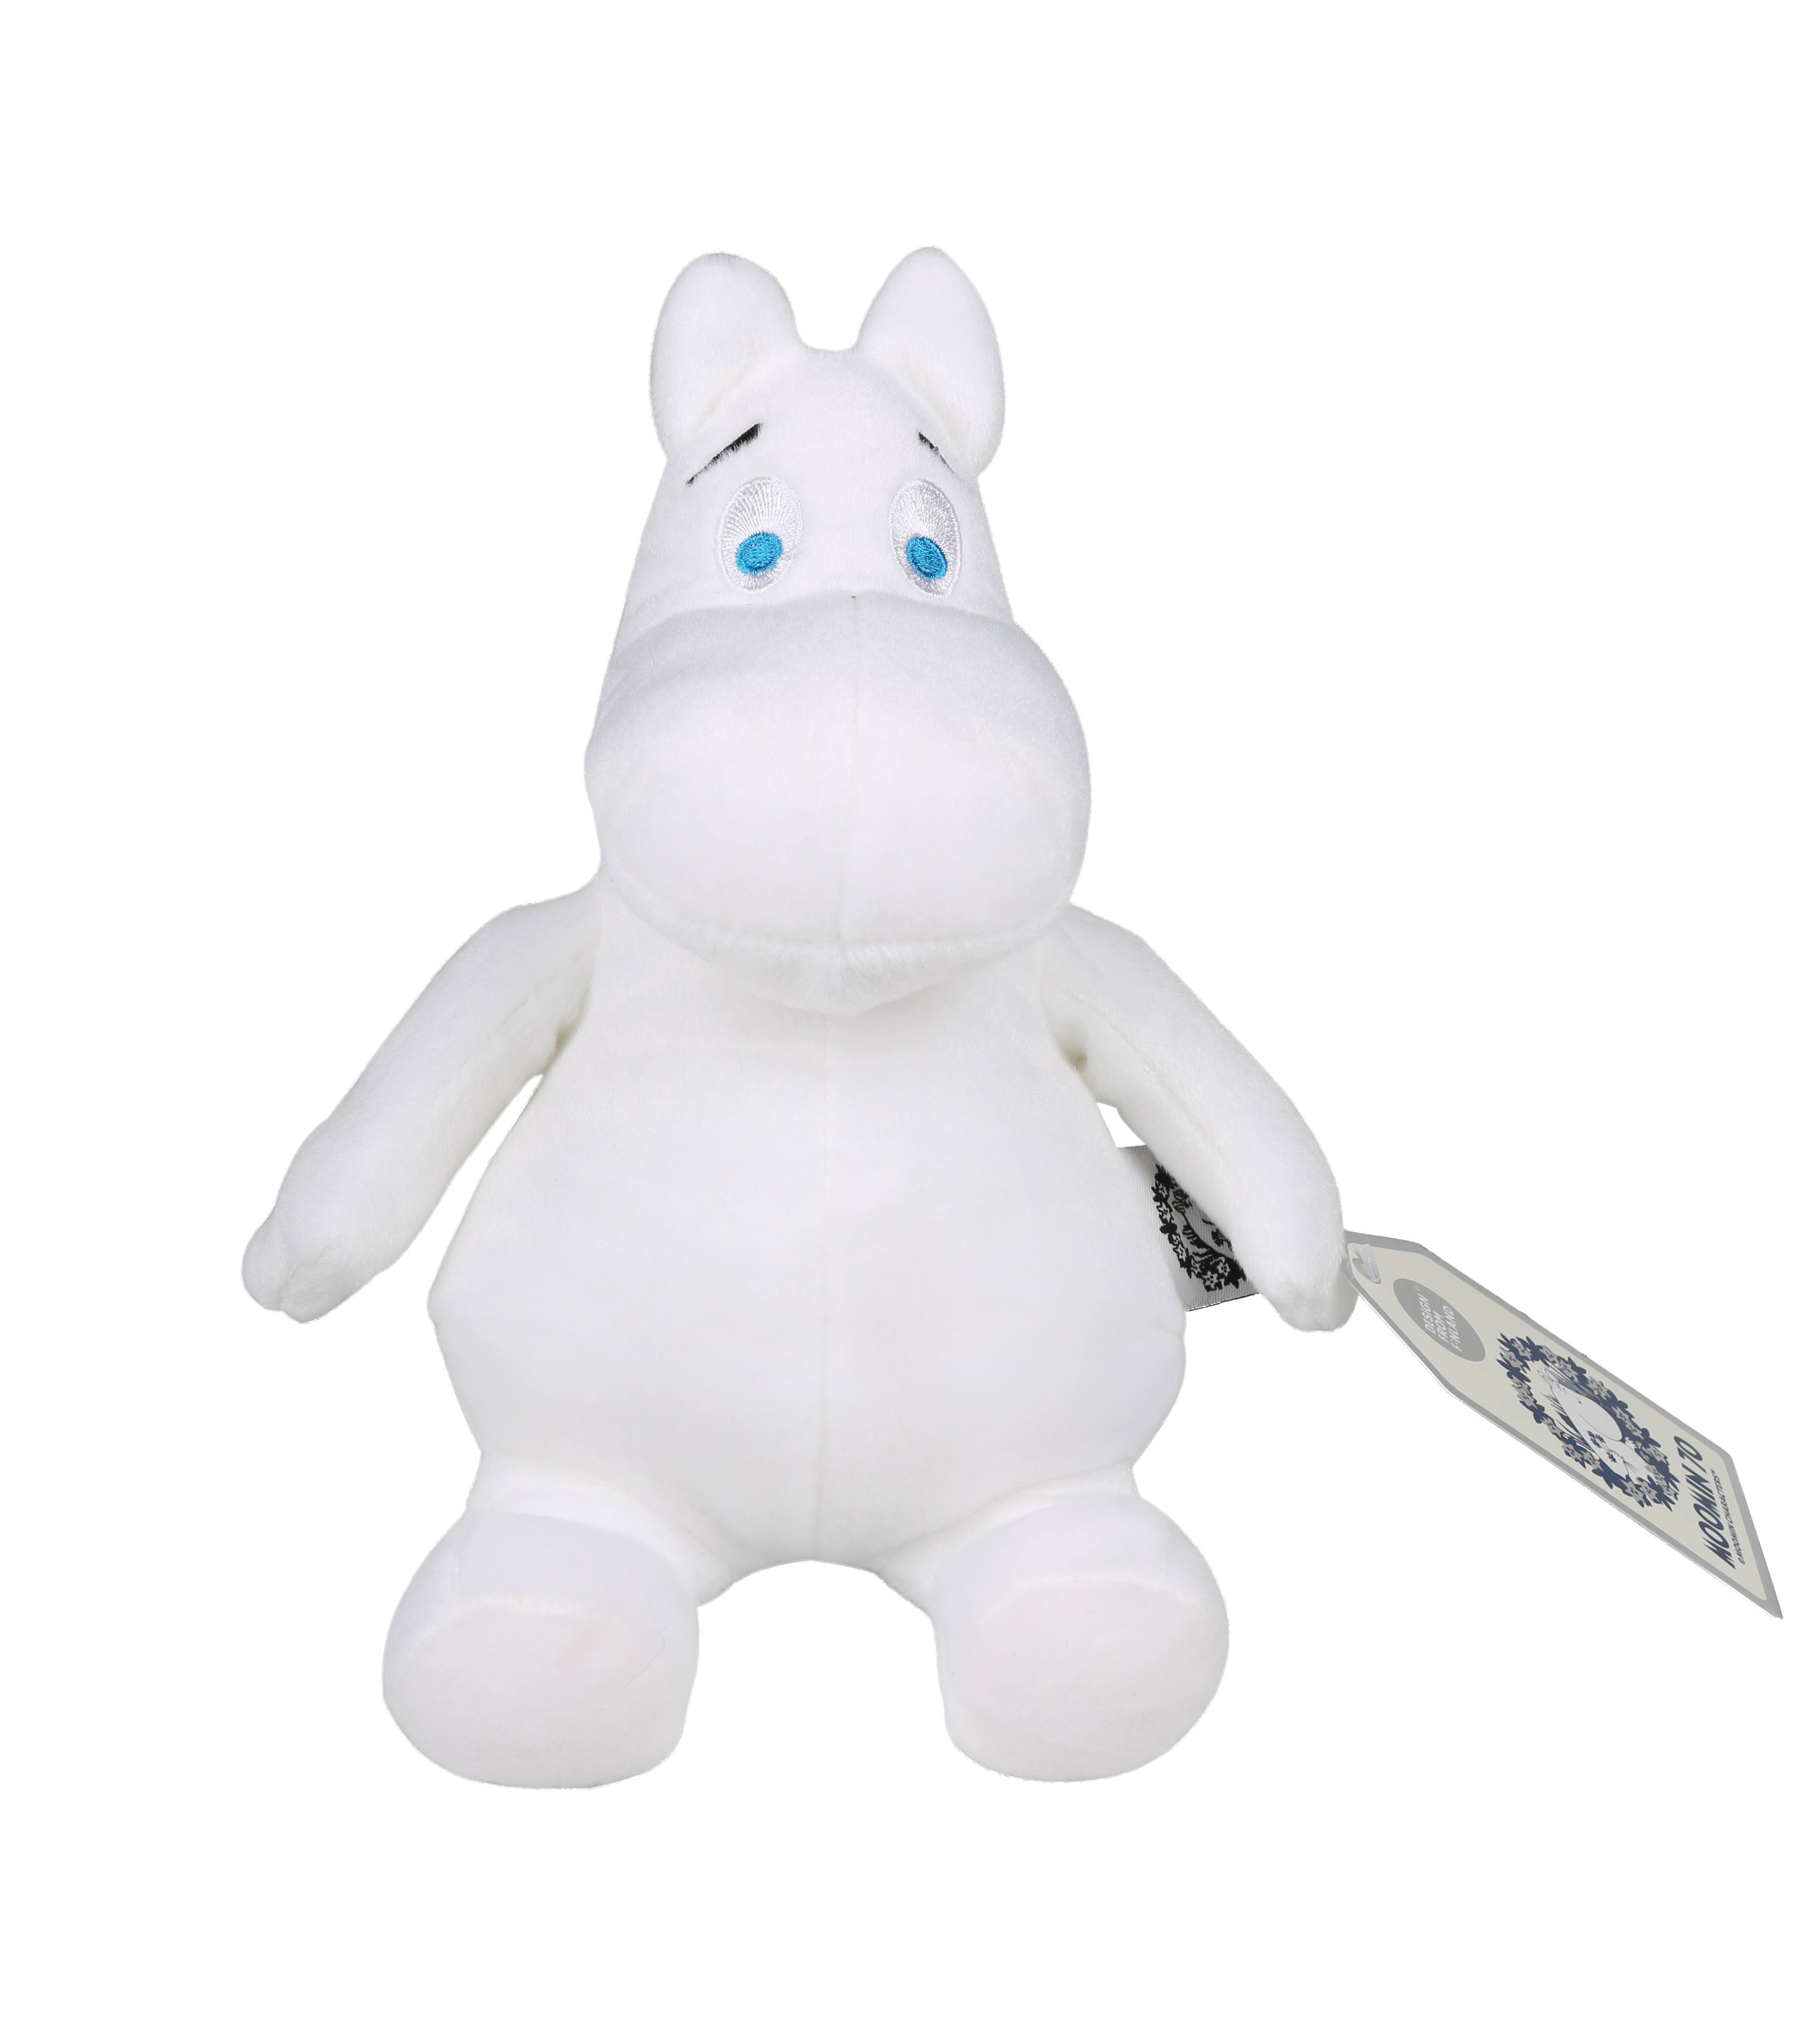 Martinex 70 year celebration Moomin plush toy 22cm